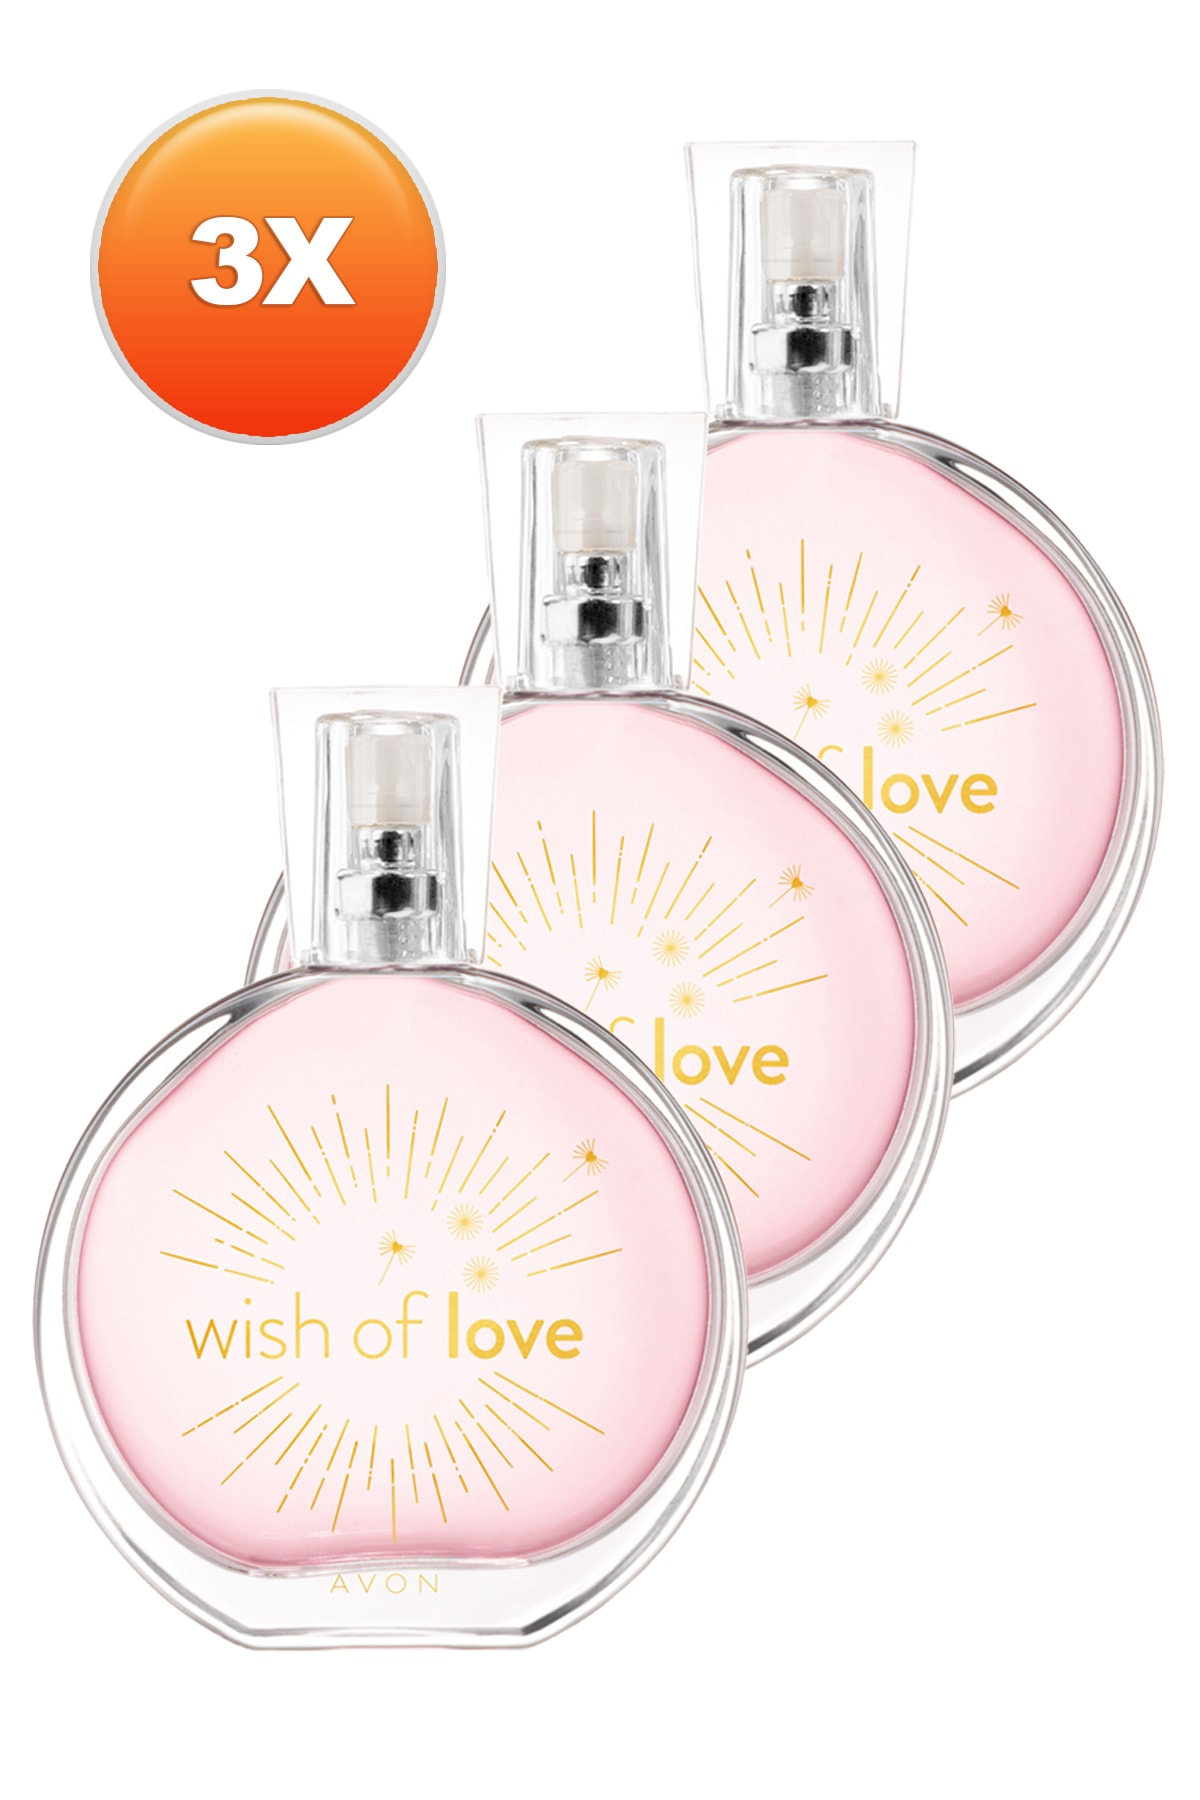 Avon Wish Of Love Kadın Parfüm Edt 50 ml 3'lü Set 5050000103381 1